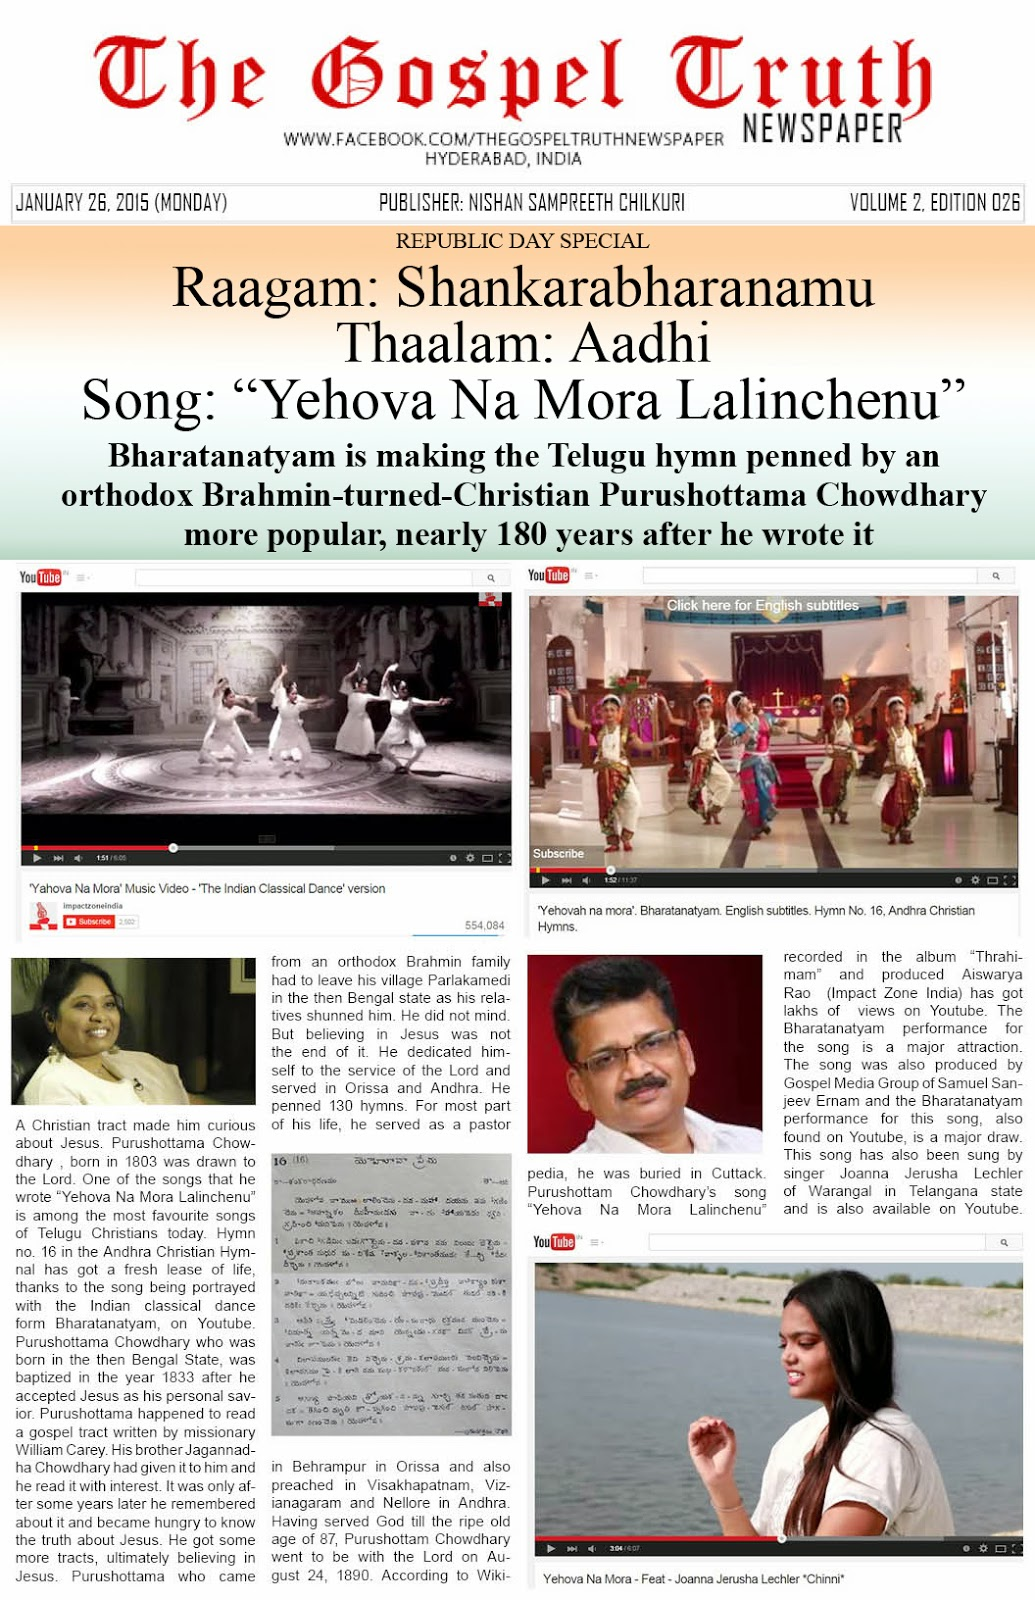 Bharatanatyam is making the Telugu hymn penned by an